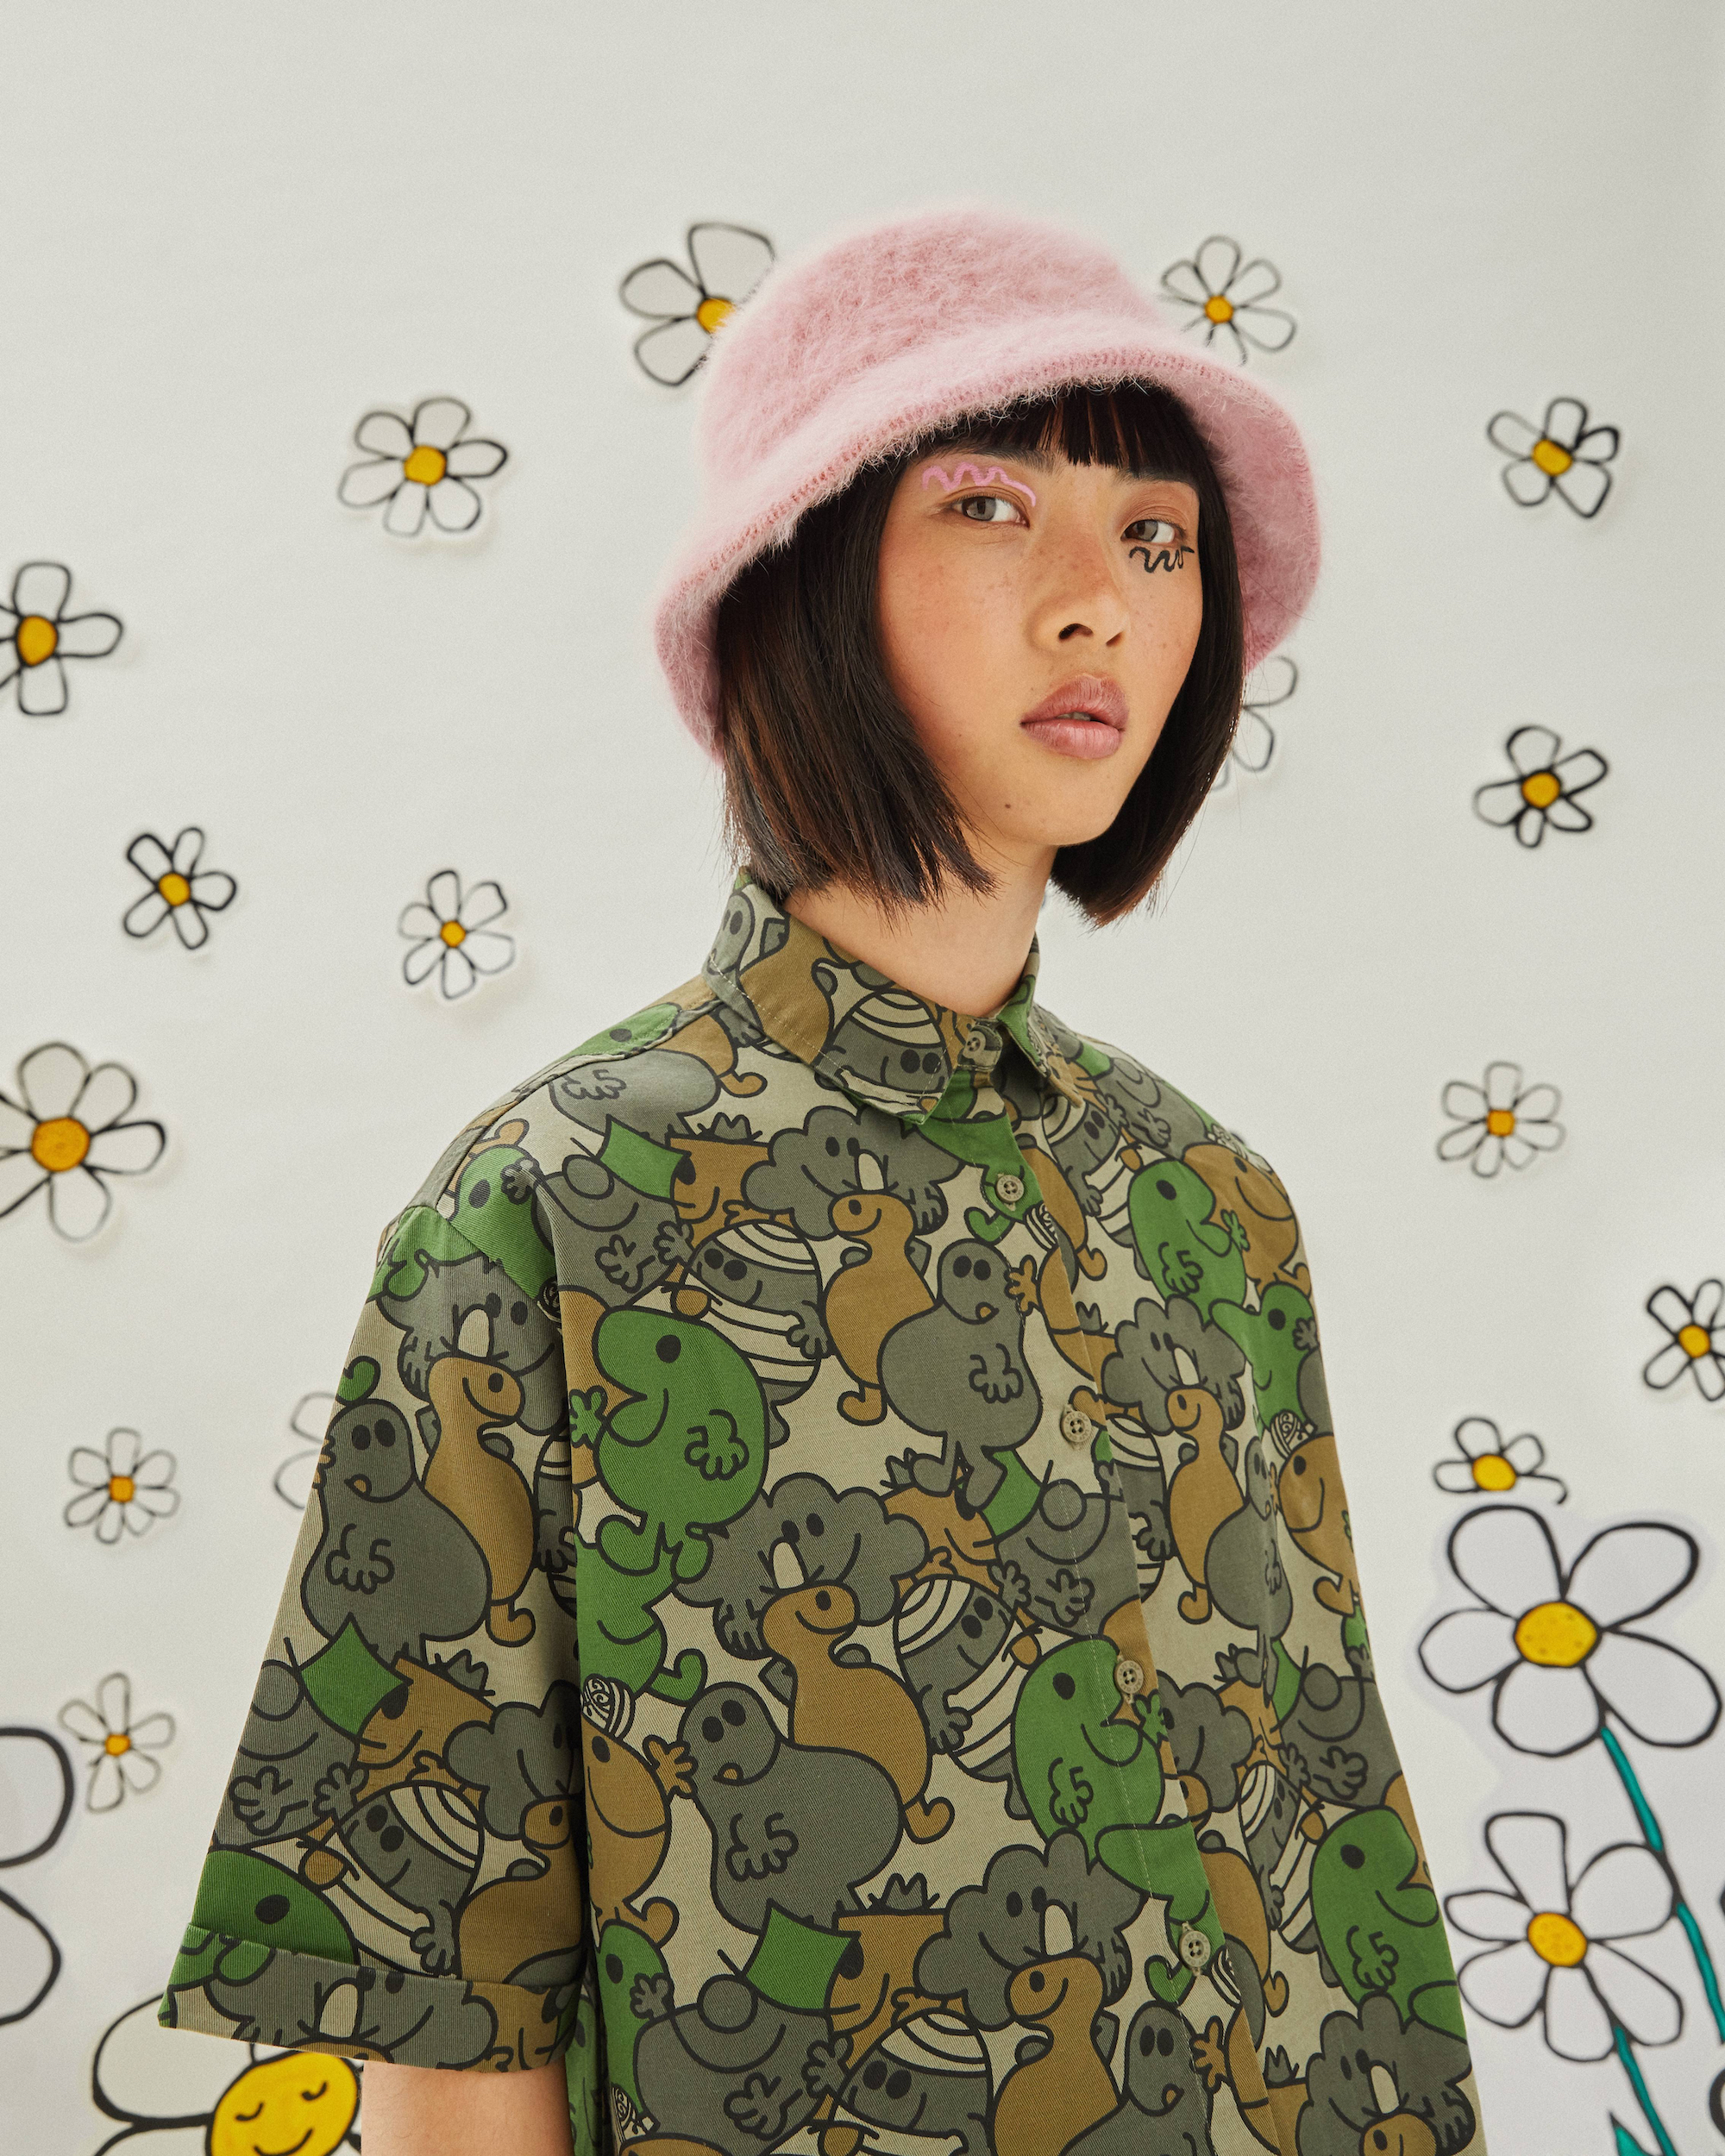 Wonderland Lazy Oaf x Mr. Men collaboration pink bucket hat